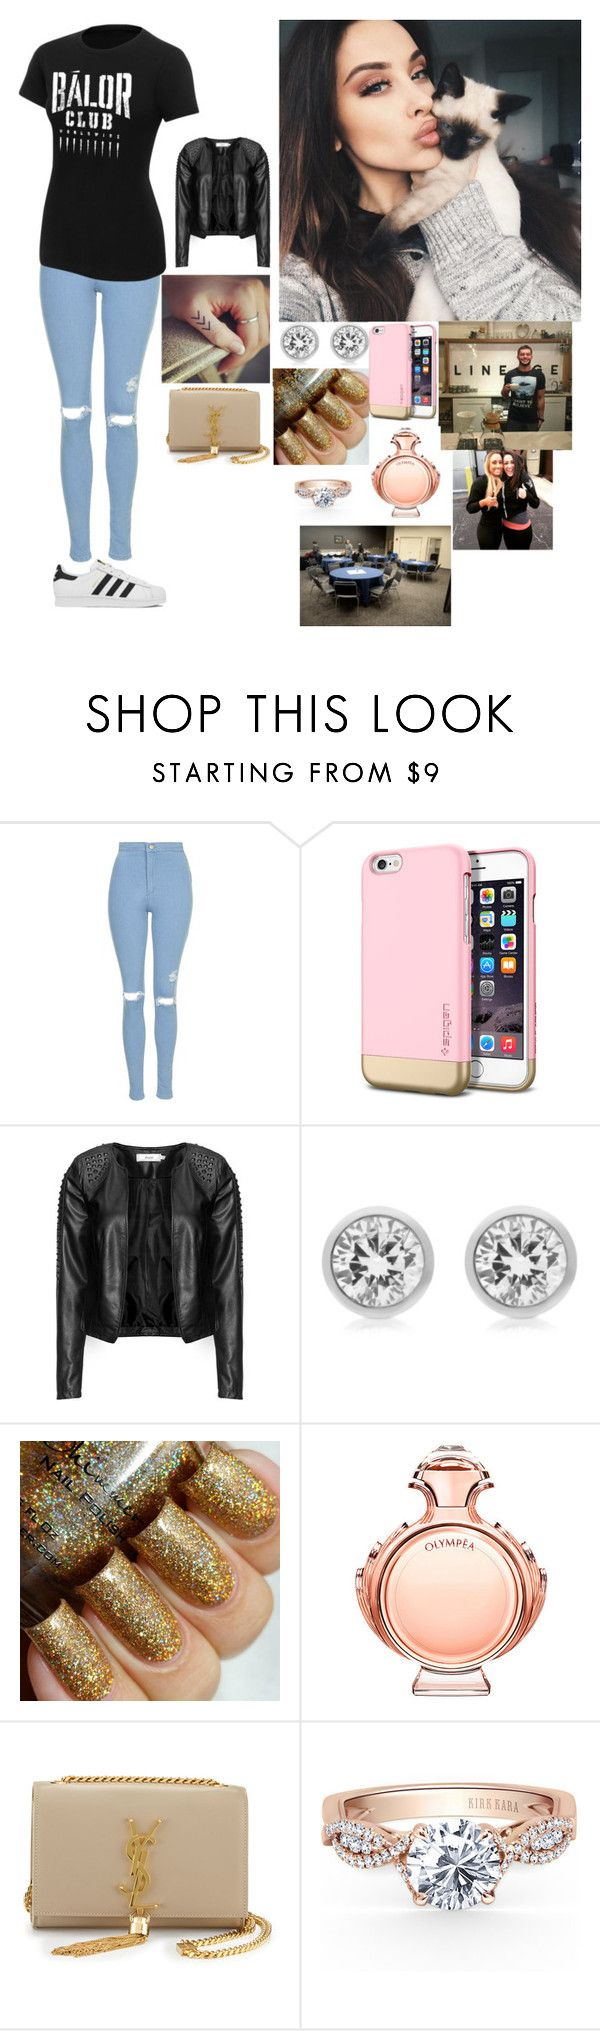 """NXT: Milwaukee"" by banks-on-it ❤ liked on Polyvore featuring Topshop, Zizzi, Michael Kors, Paco Rabanne, Yves Saint Laurent, adidas, women's clothing, women's fashion, women and female"